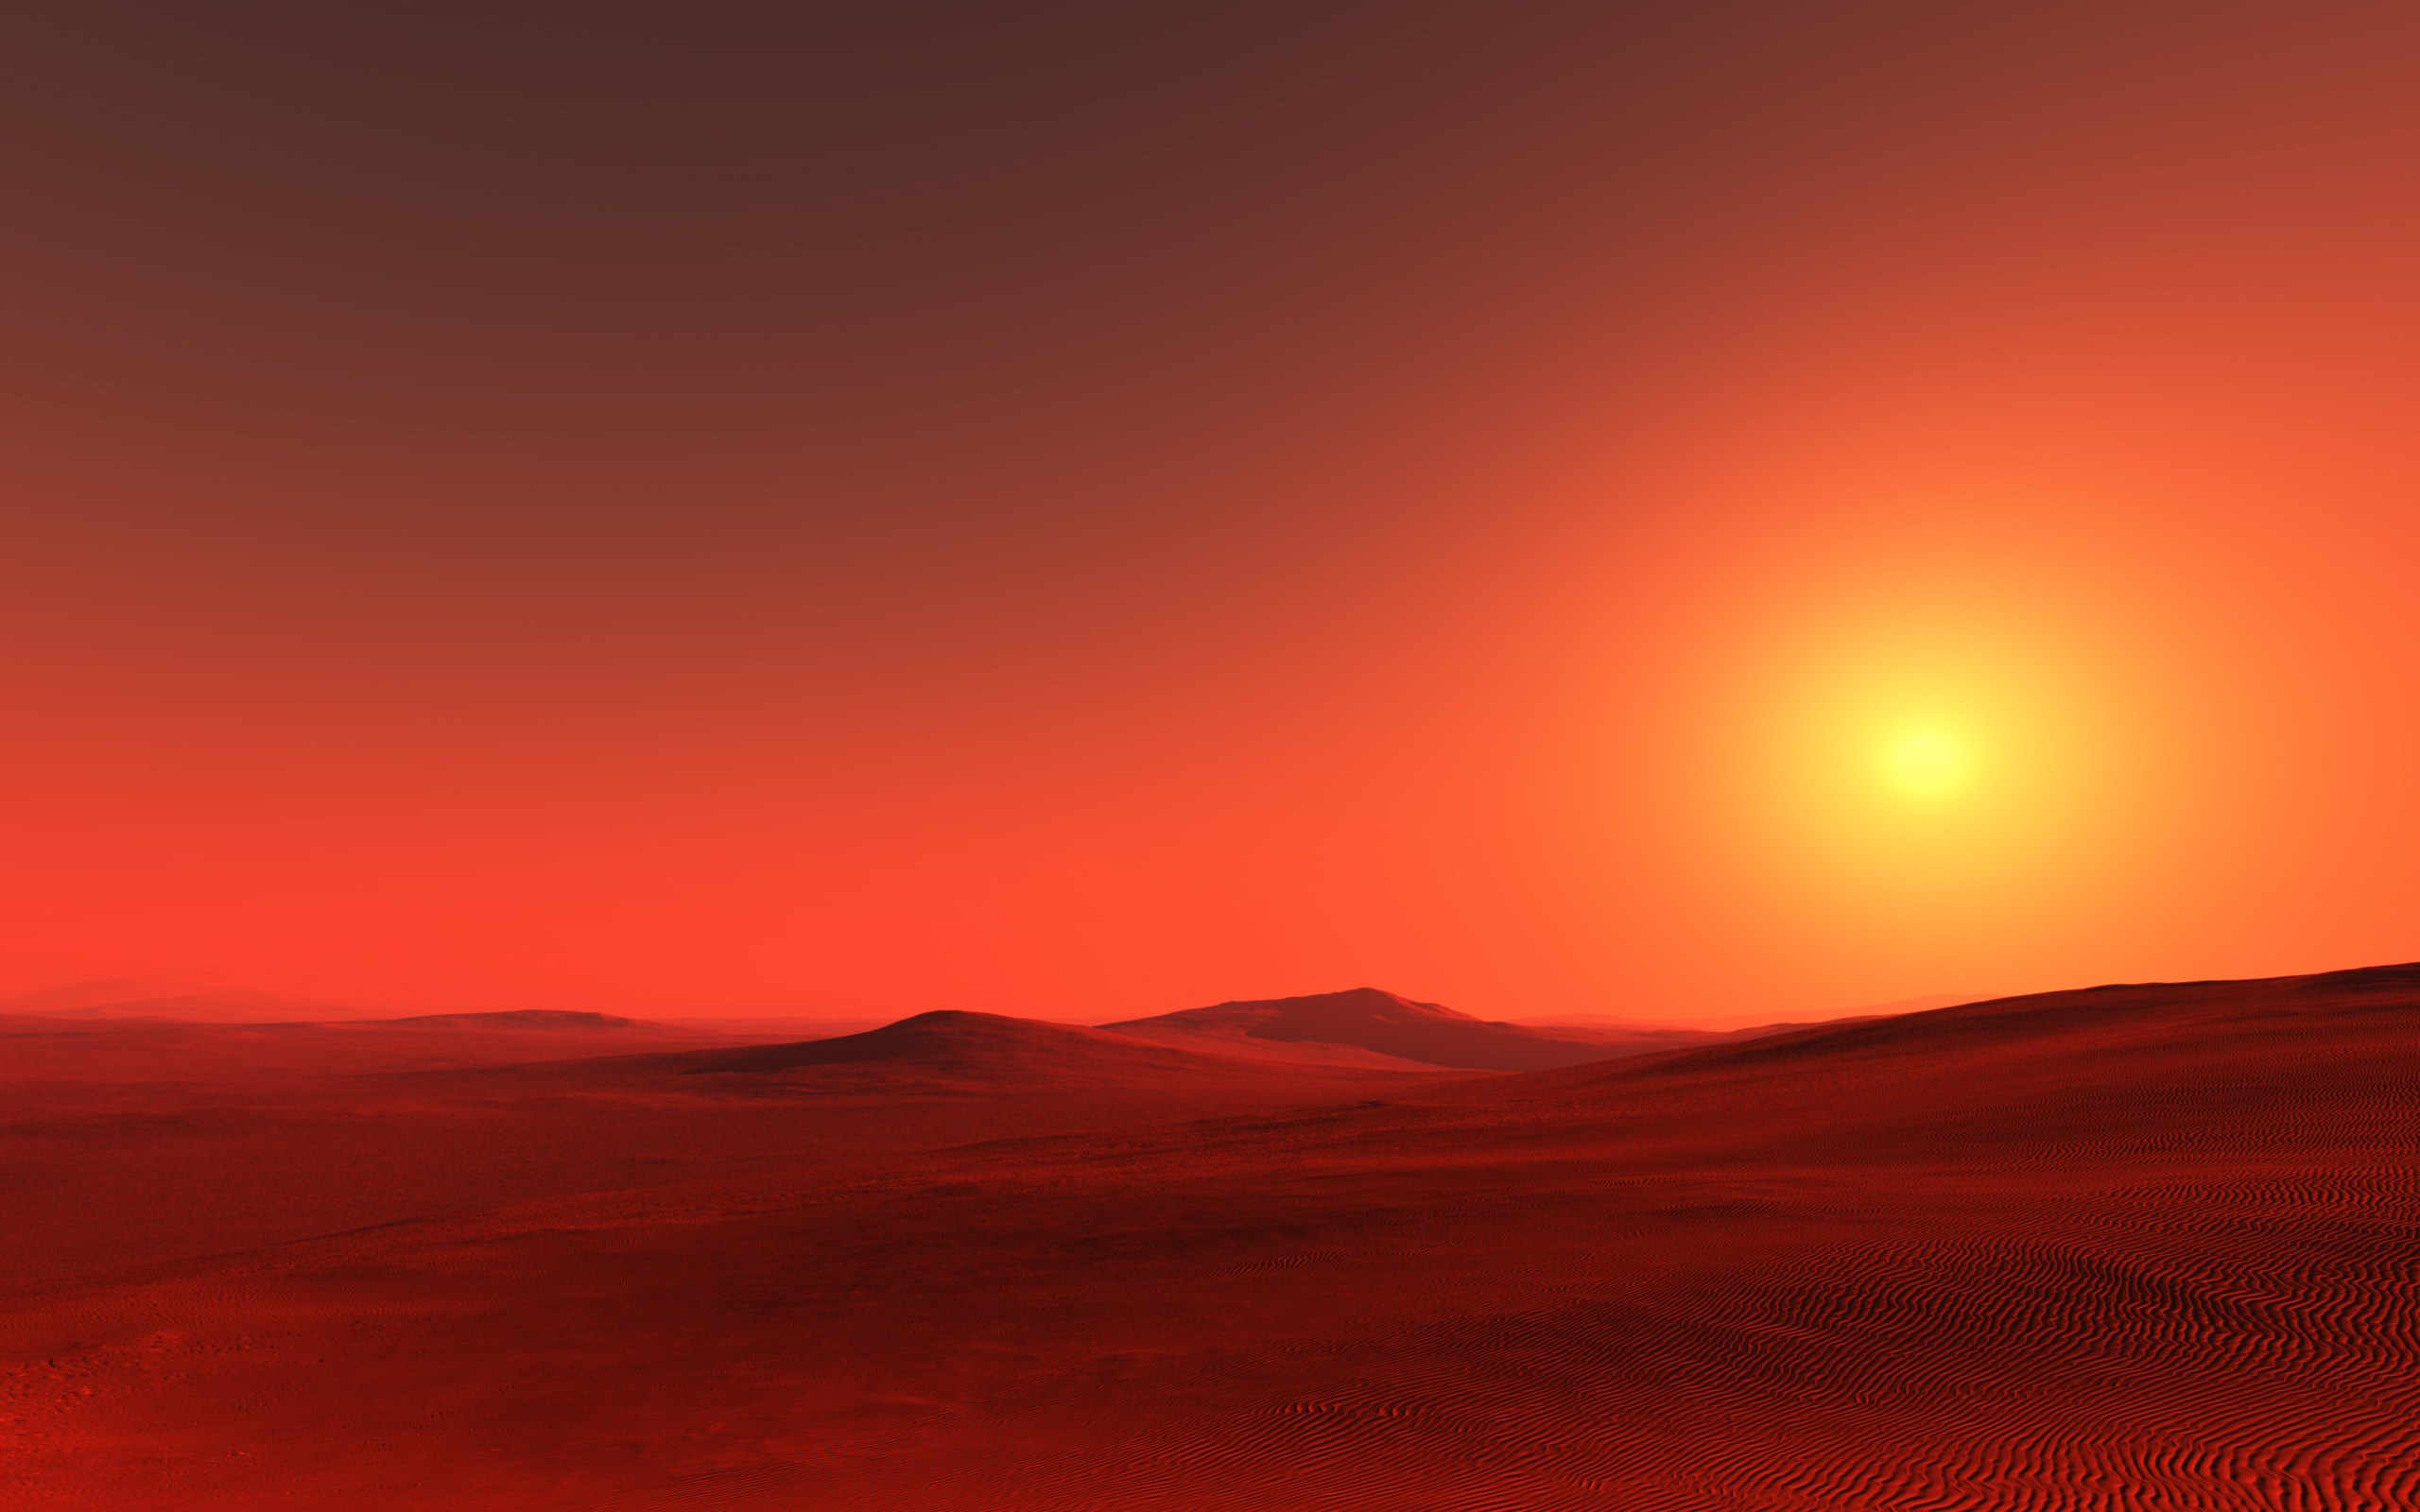 mars landscape background - HD 1920×1200